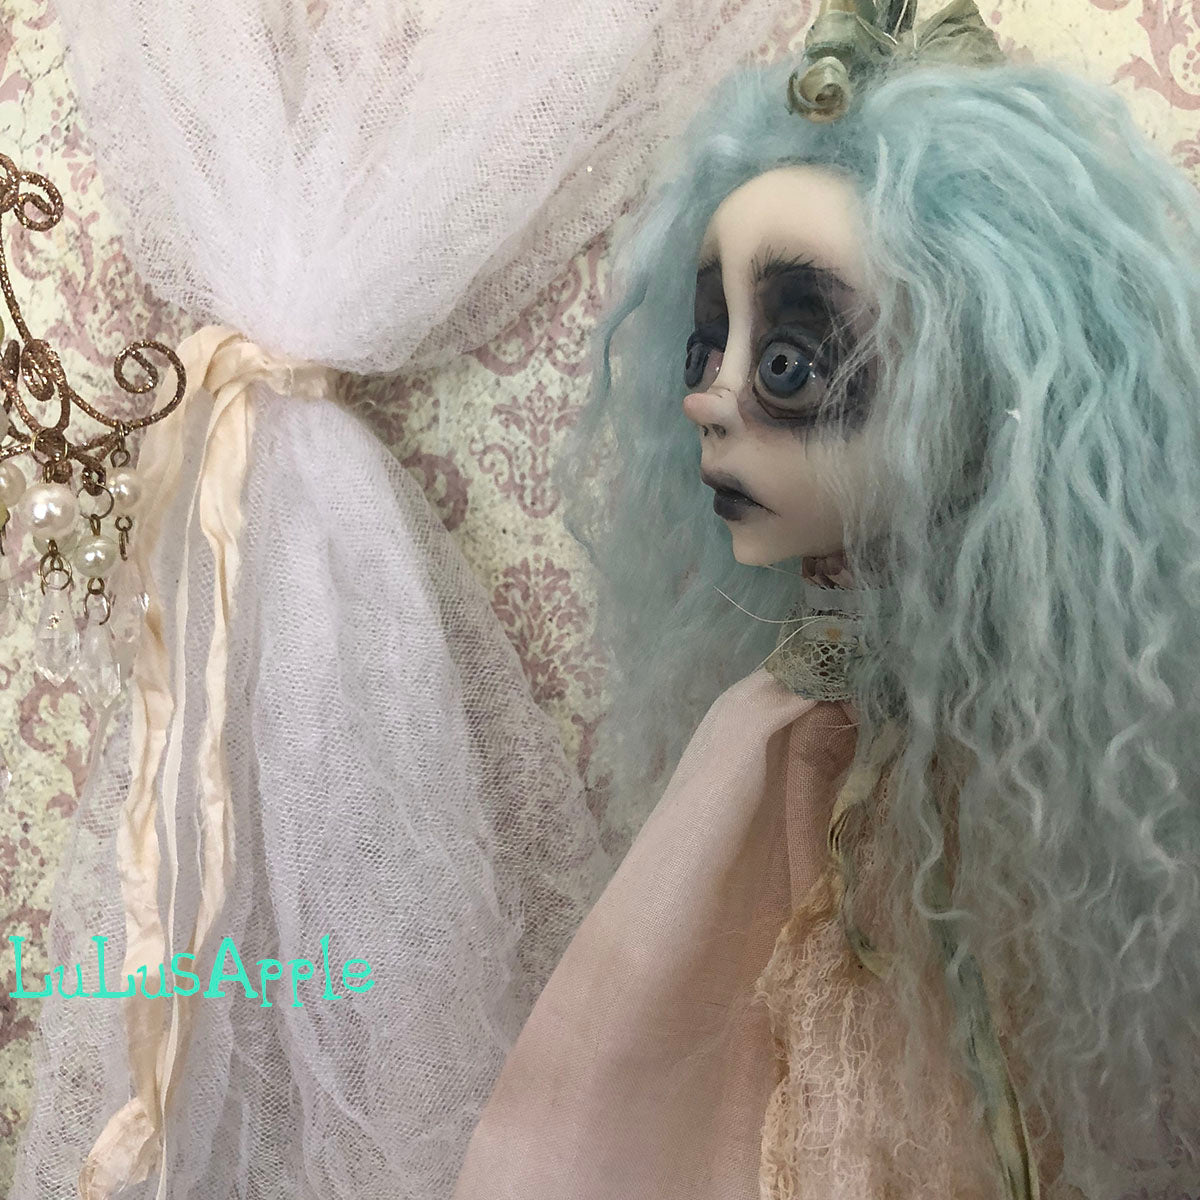 Decapitated Blue Head Ghostly ornament OOAK LuLusApple Art Doll